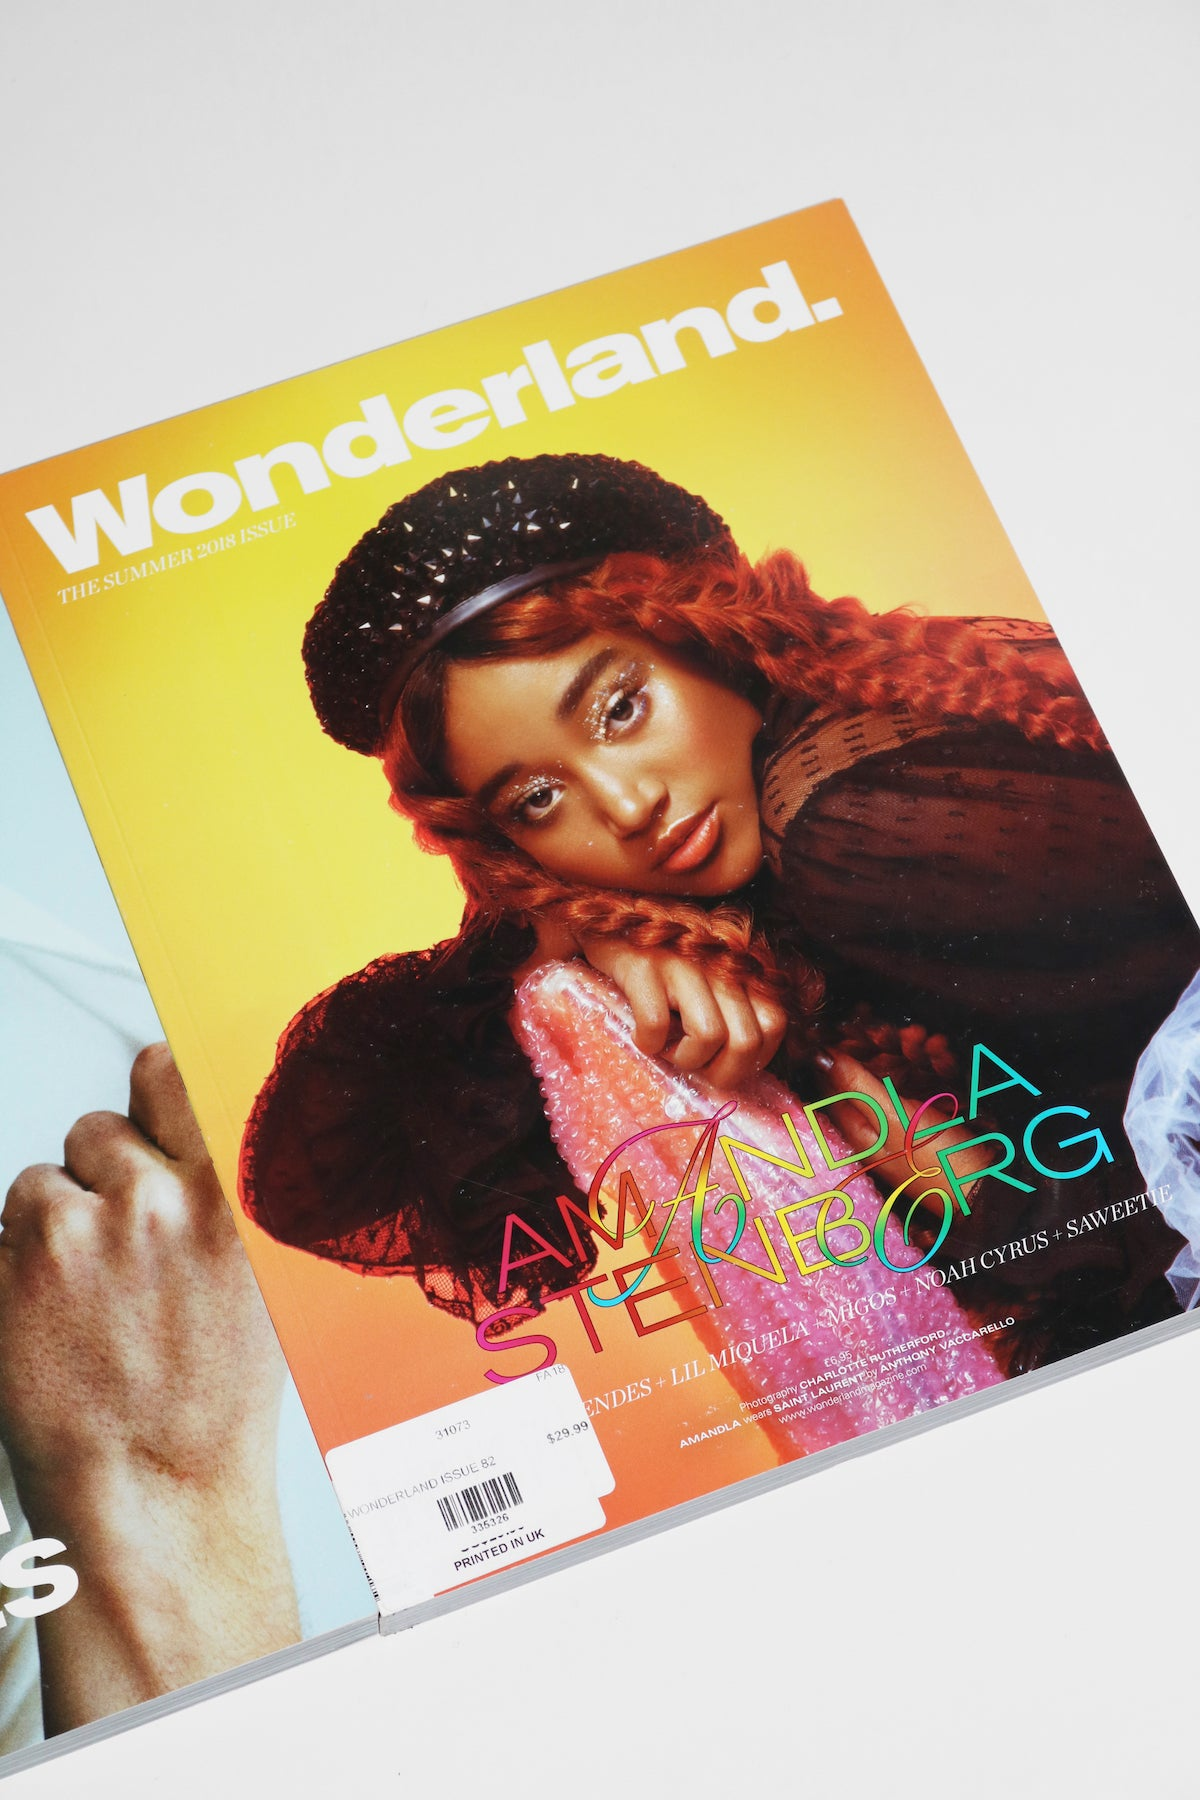 Wonderland Magazine, Issue 82